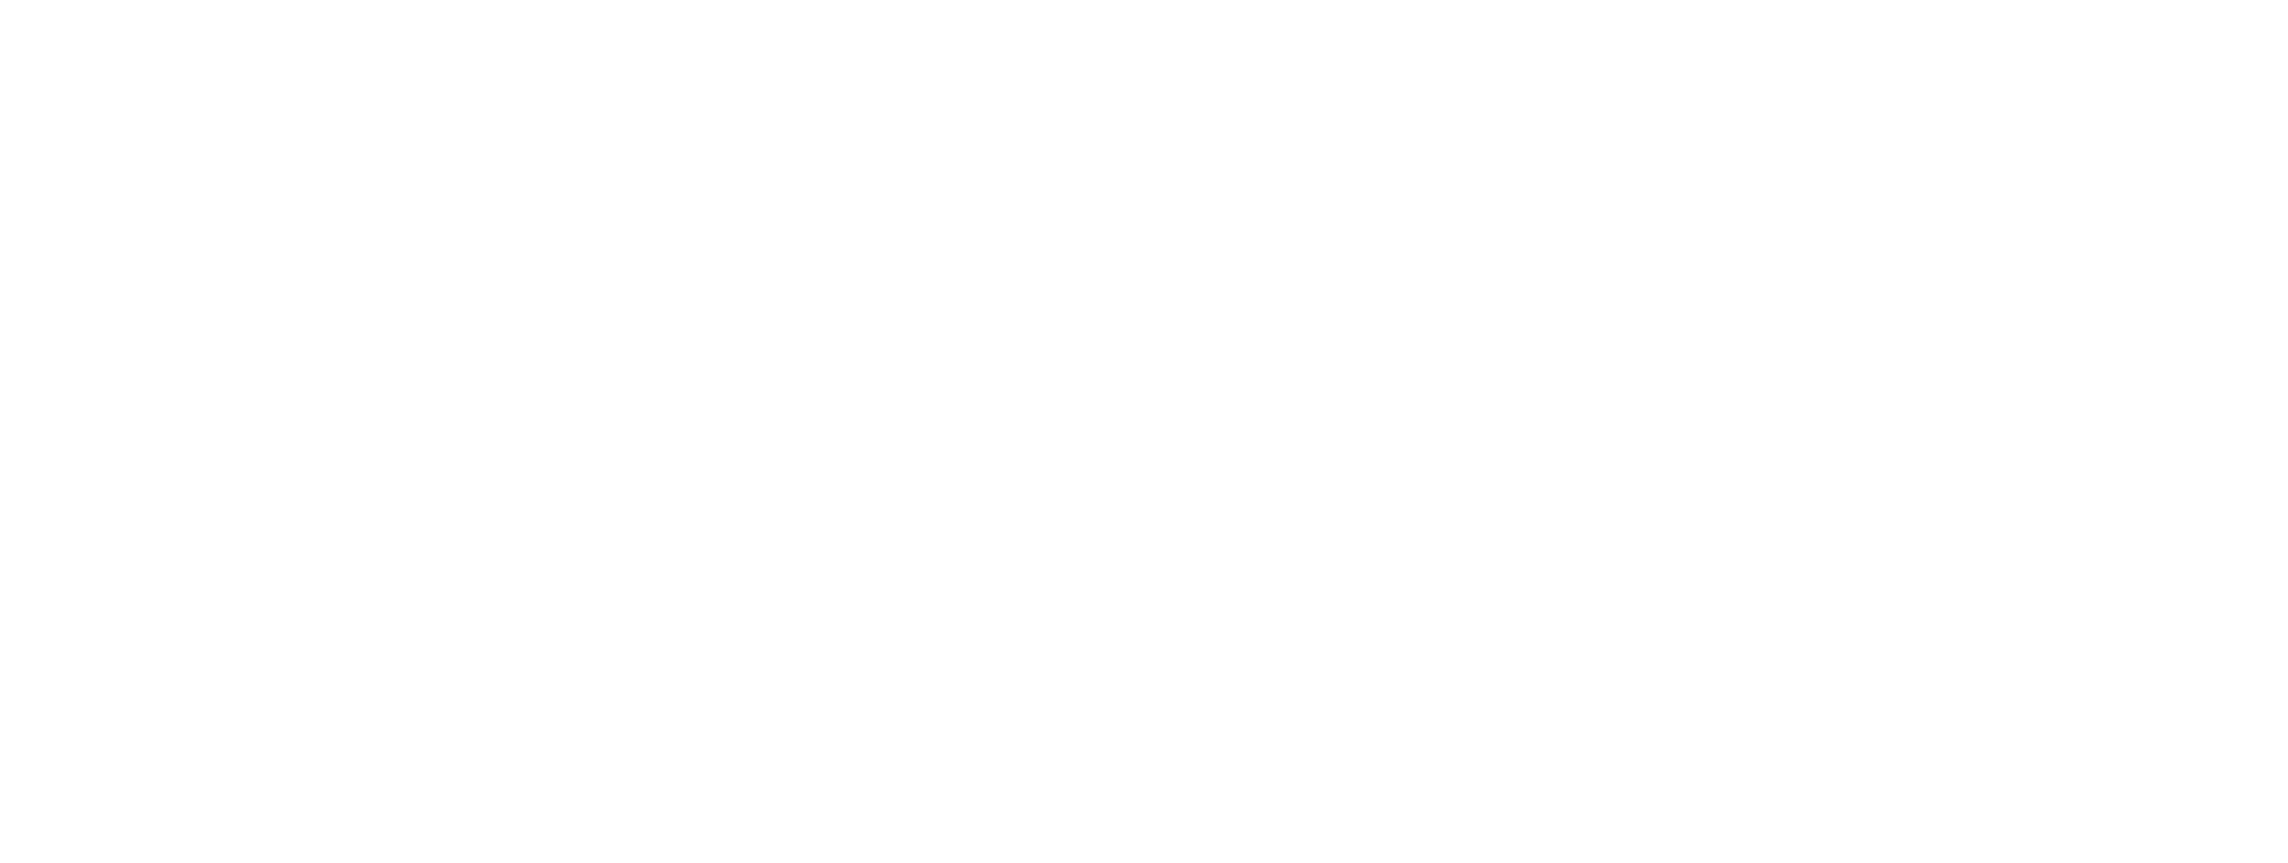 Forge Great Futures. The campaign for Durham Tech.